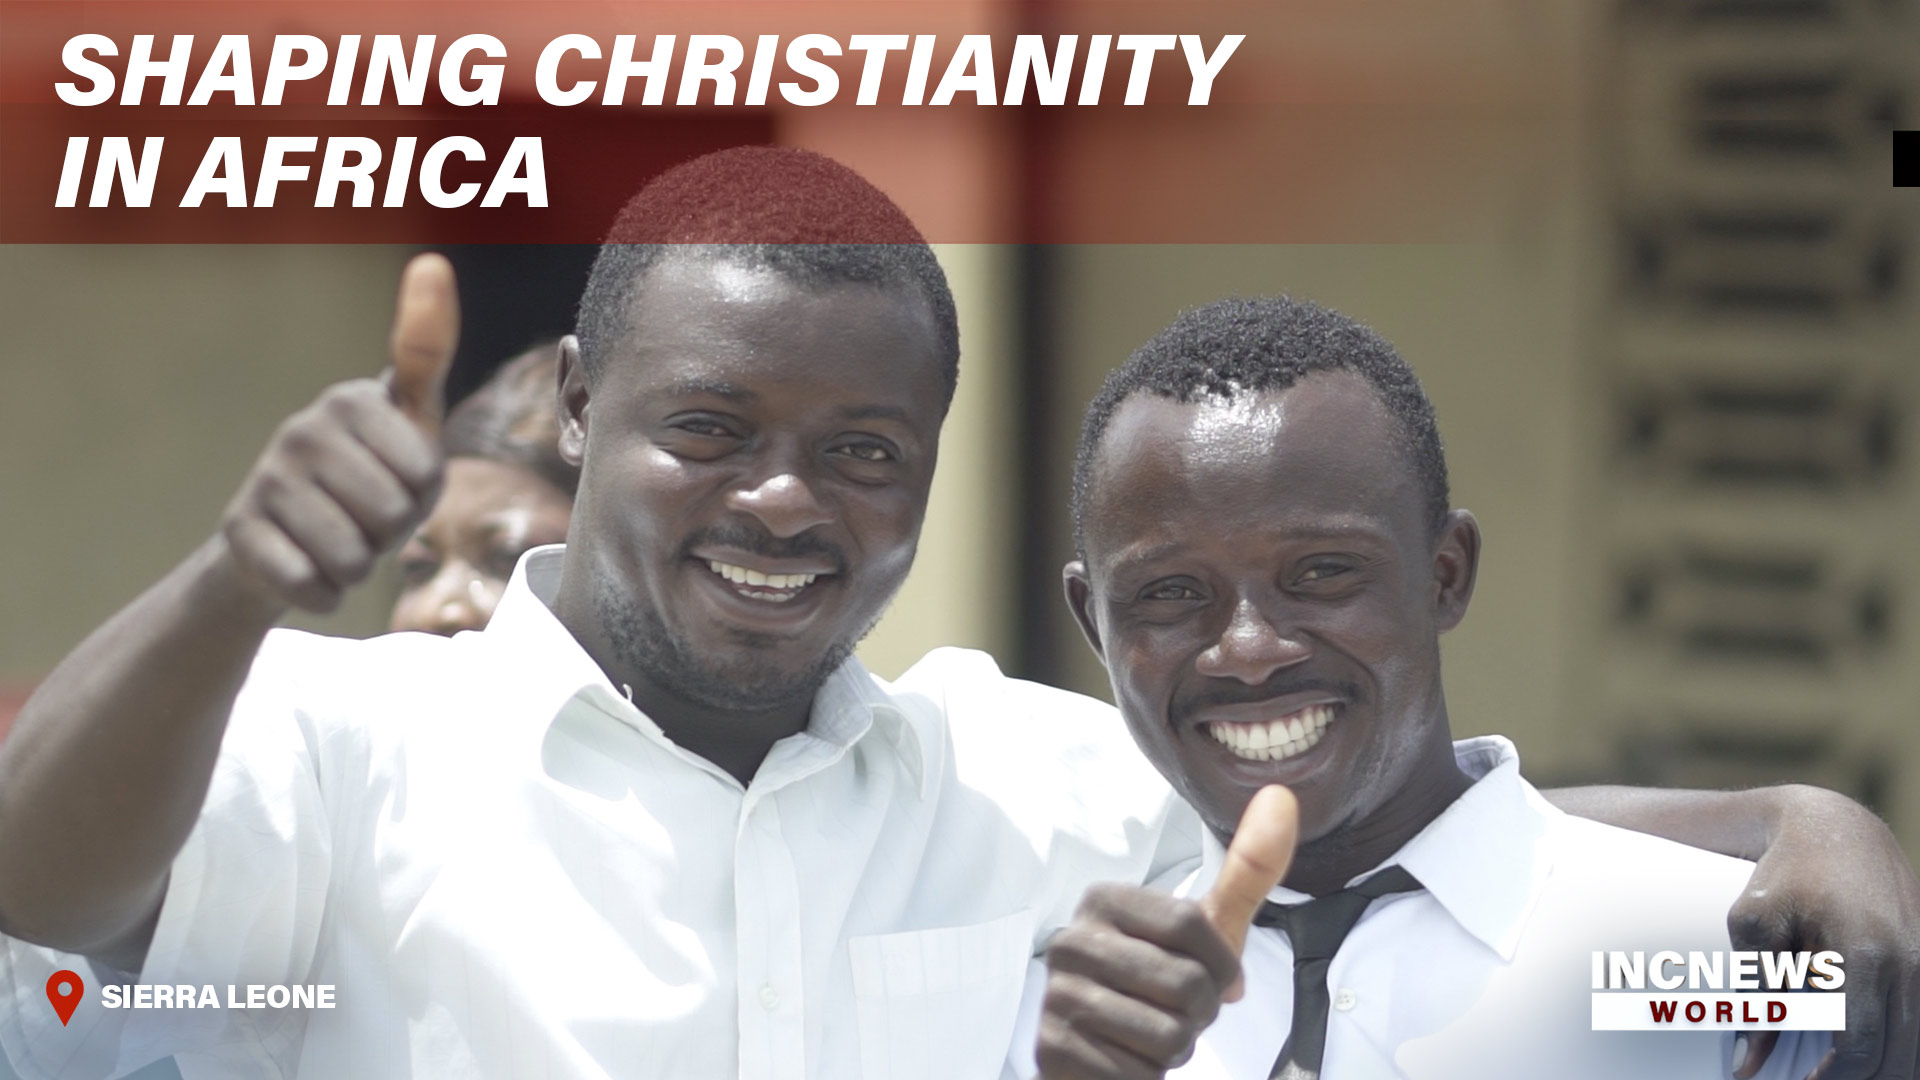 Shaping Christianity in Africa